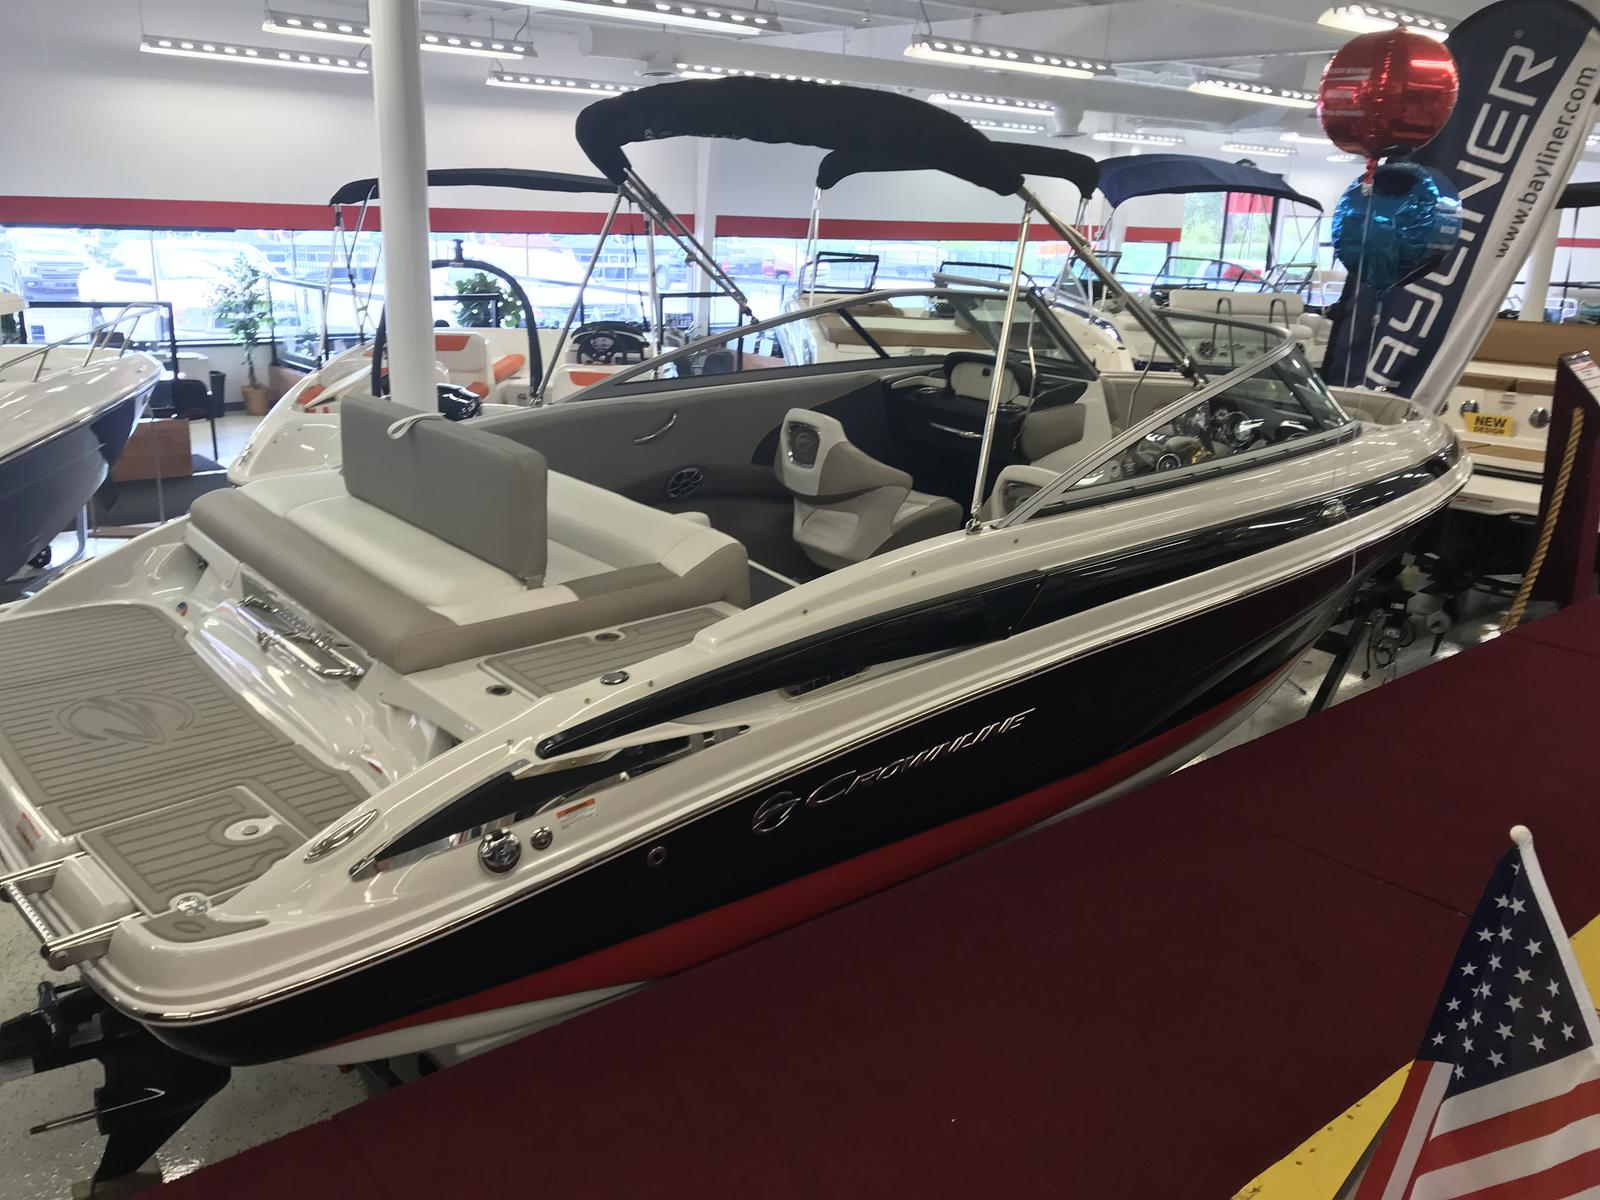 2019 Crownline 215 SS for sale in Wixom, MI  Wilson Marine